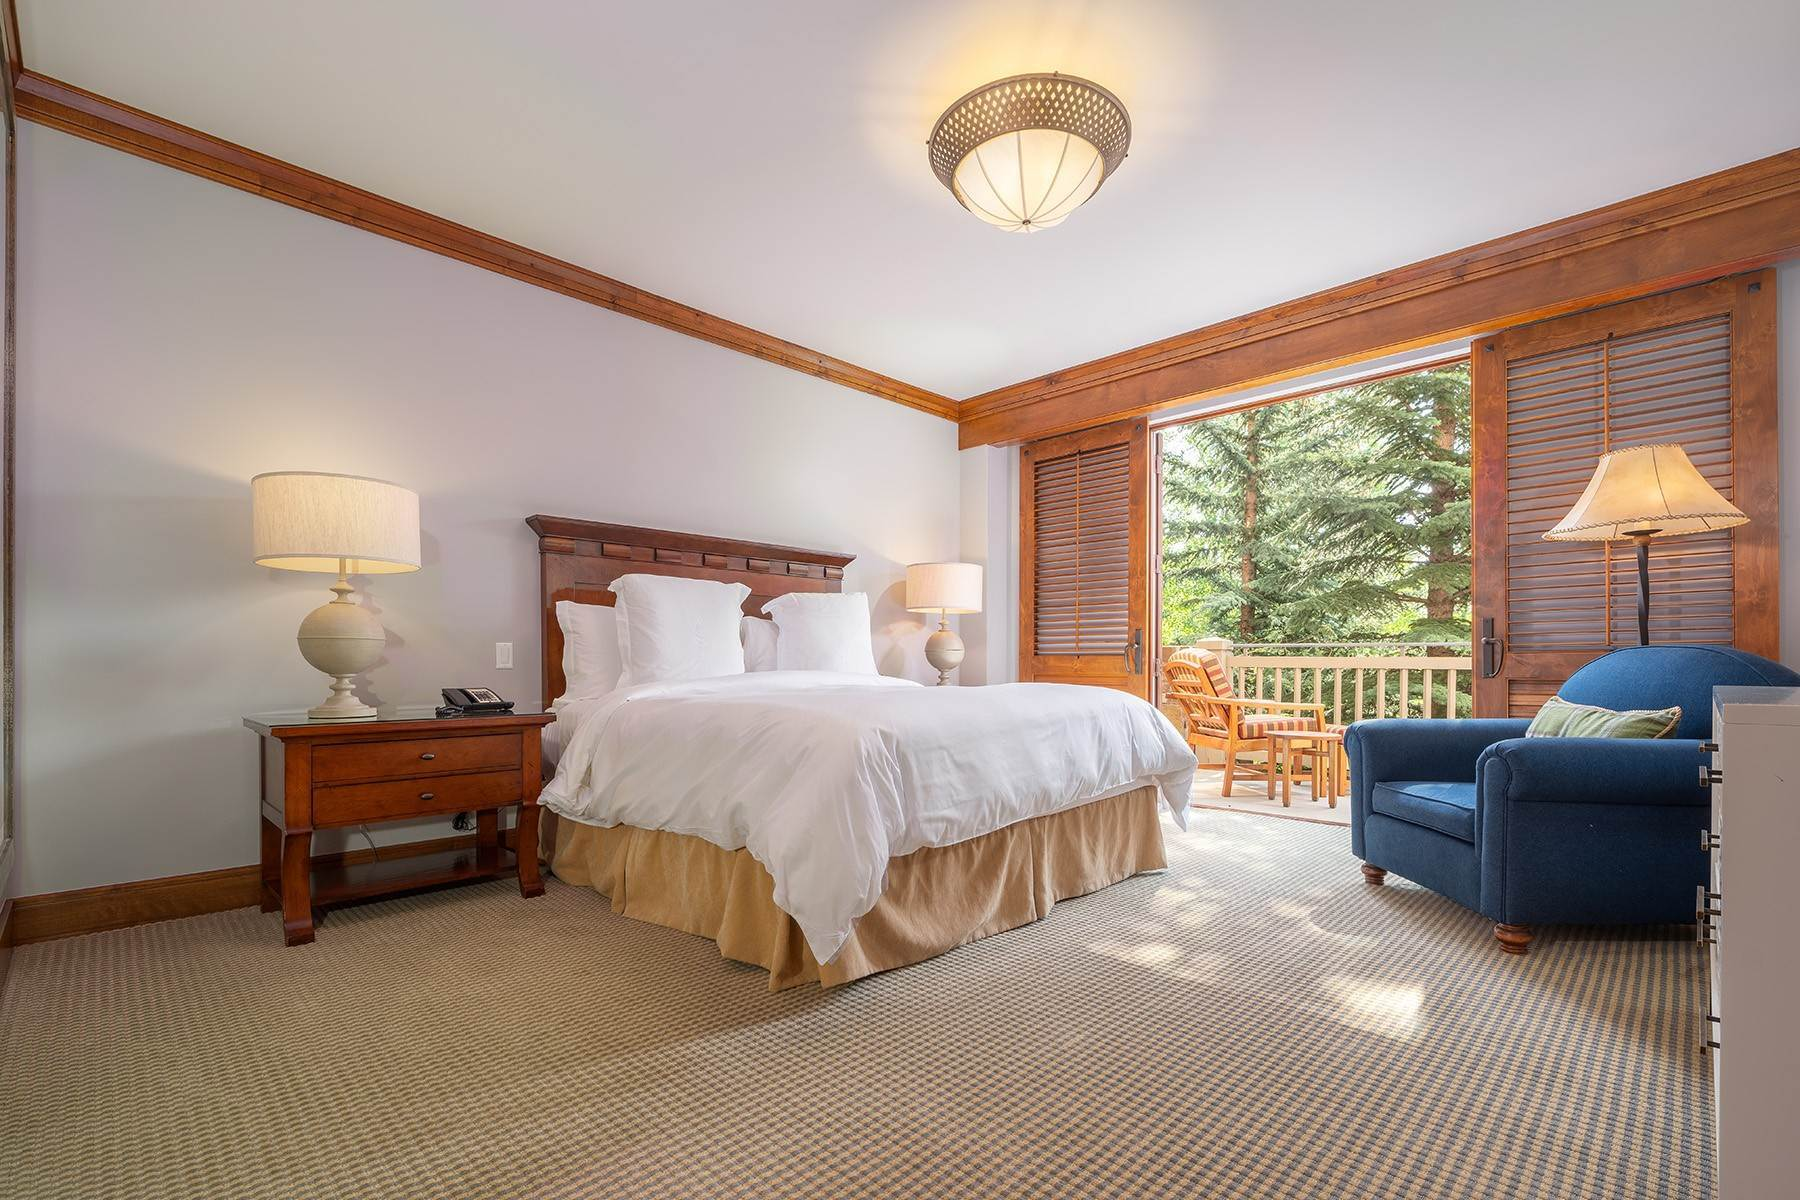 7. Condominiums for Sale at Desirable Four Seasons Private Residence 7680 Granite Loop Road, #654 Teton Village, Wyoming 83025 United States